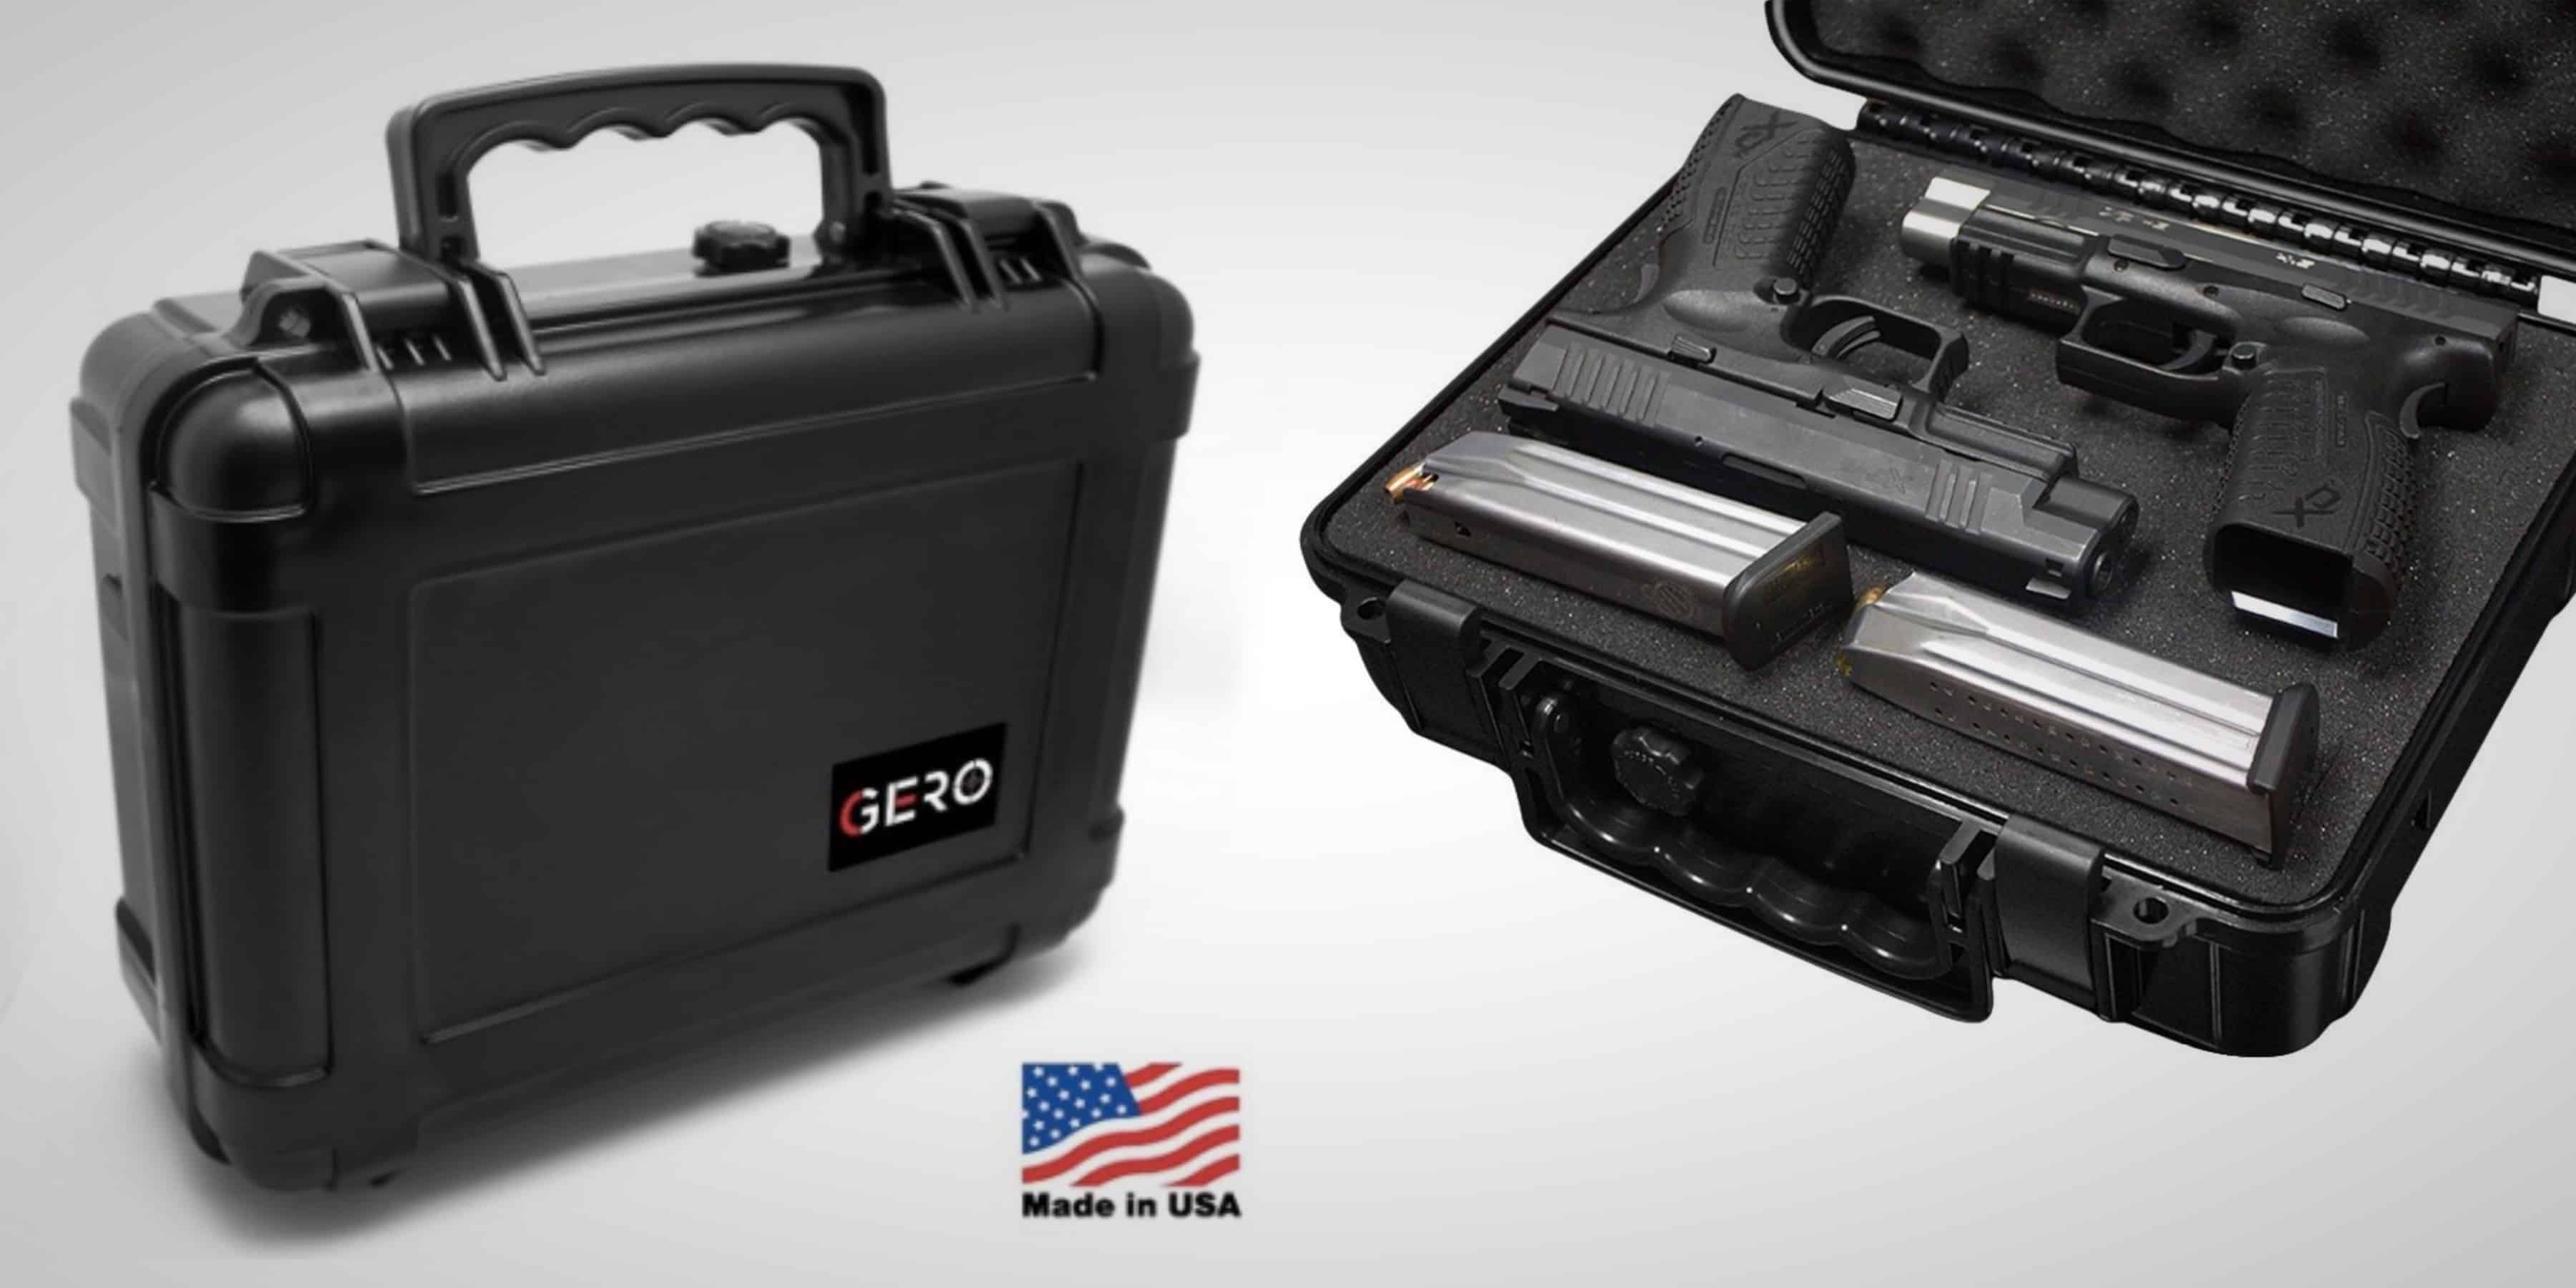 Gero Watertight Pistol Gun Case